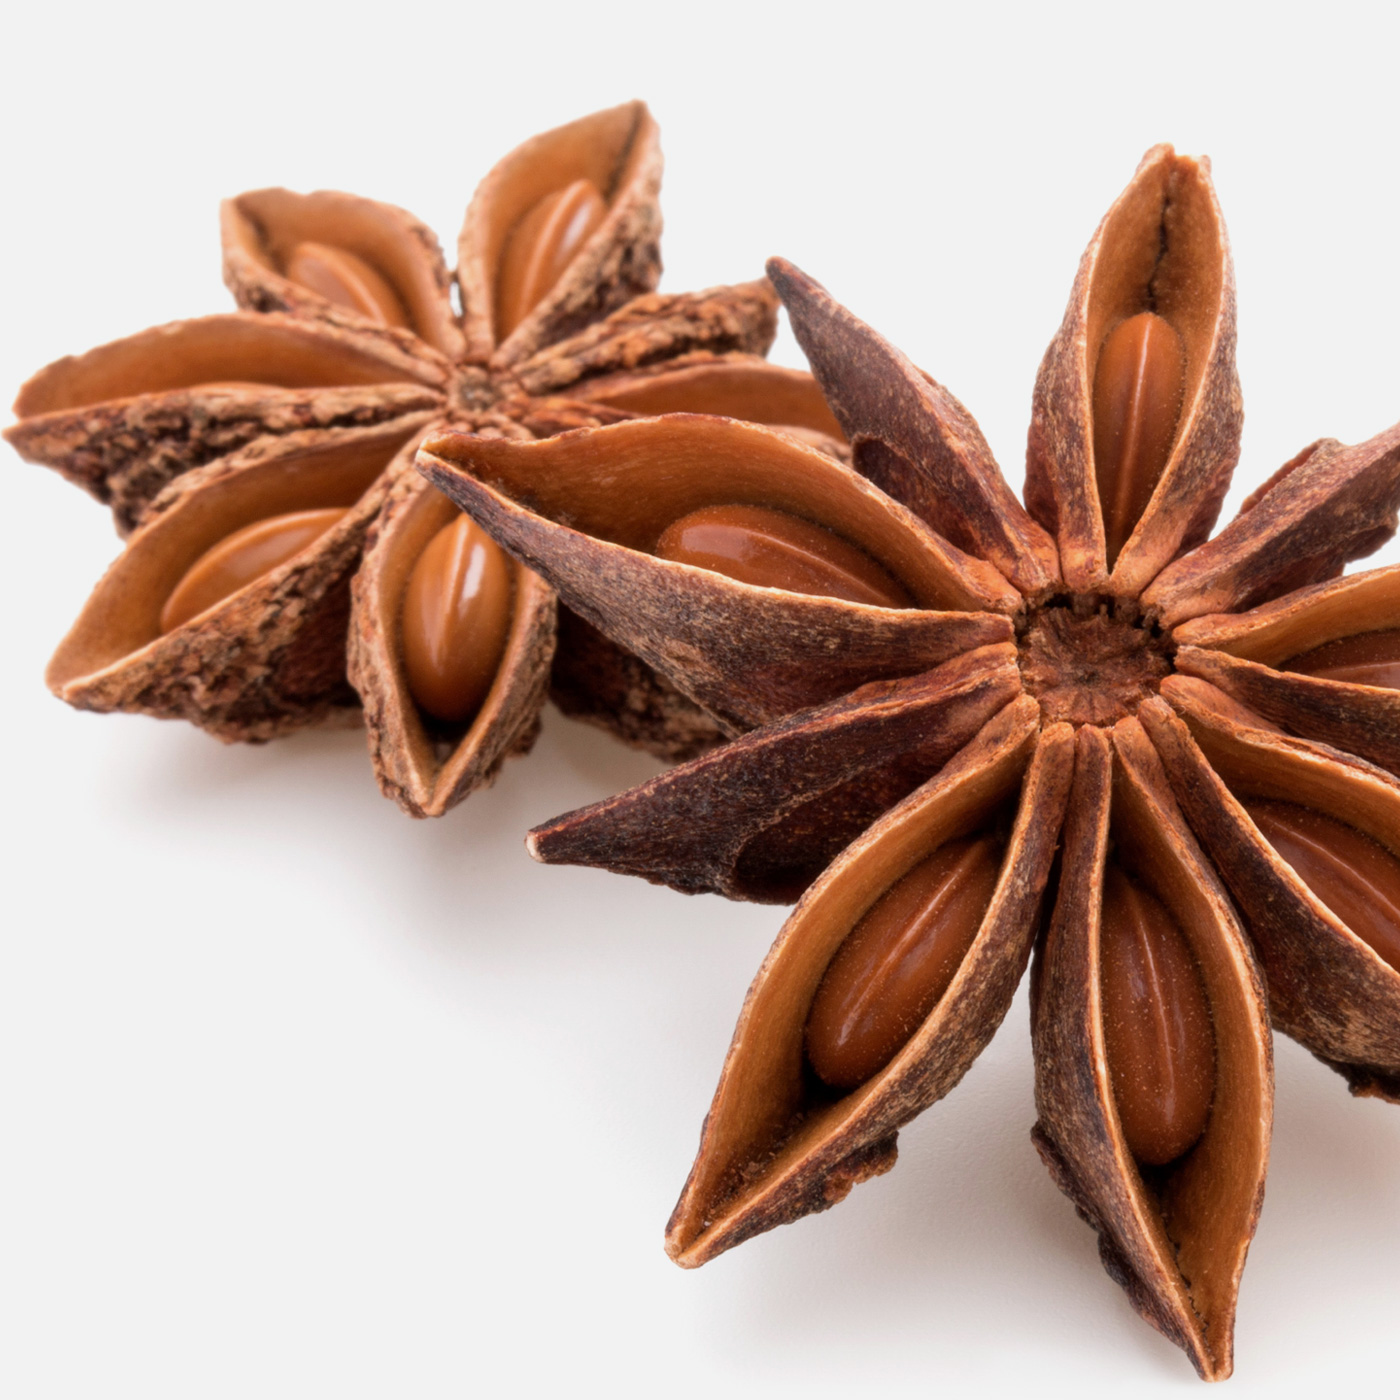 Using star anise, unlock the possibilities for flavours, aromas and sweeteners in animal feed and pet food production